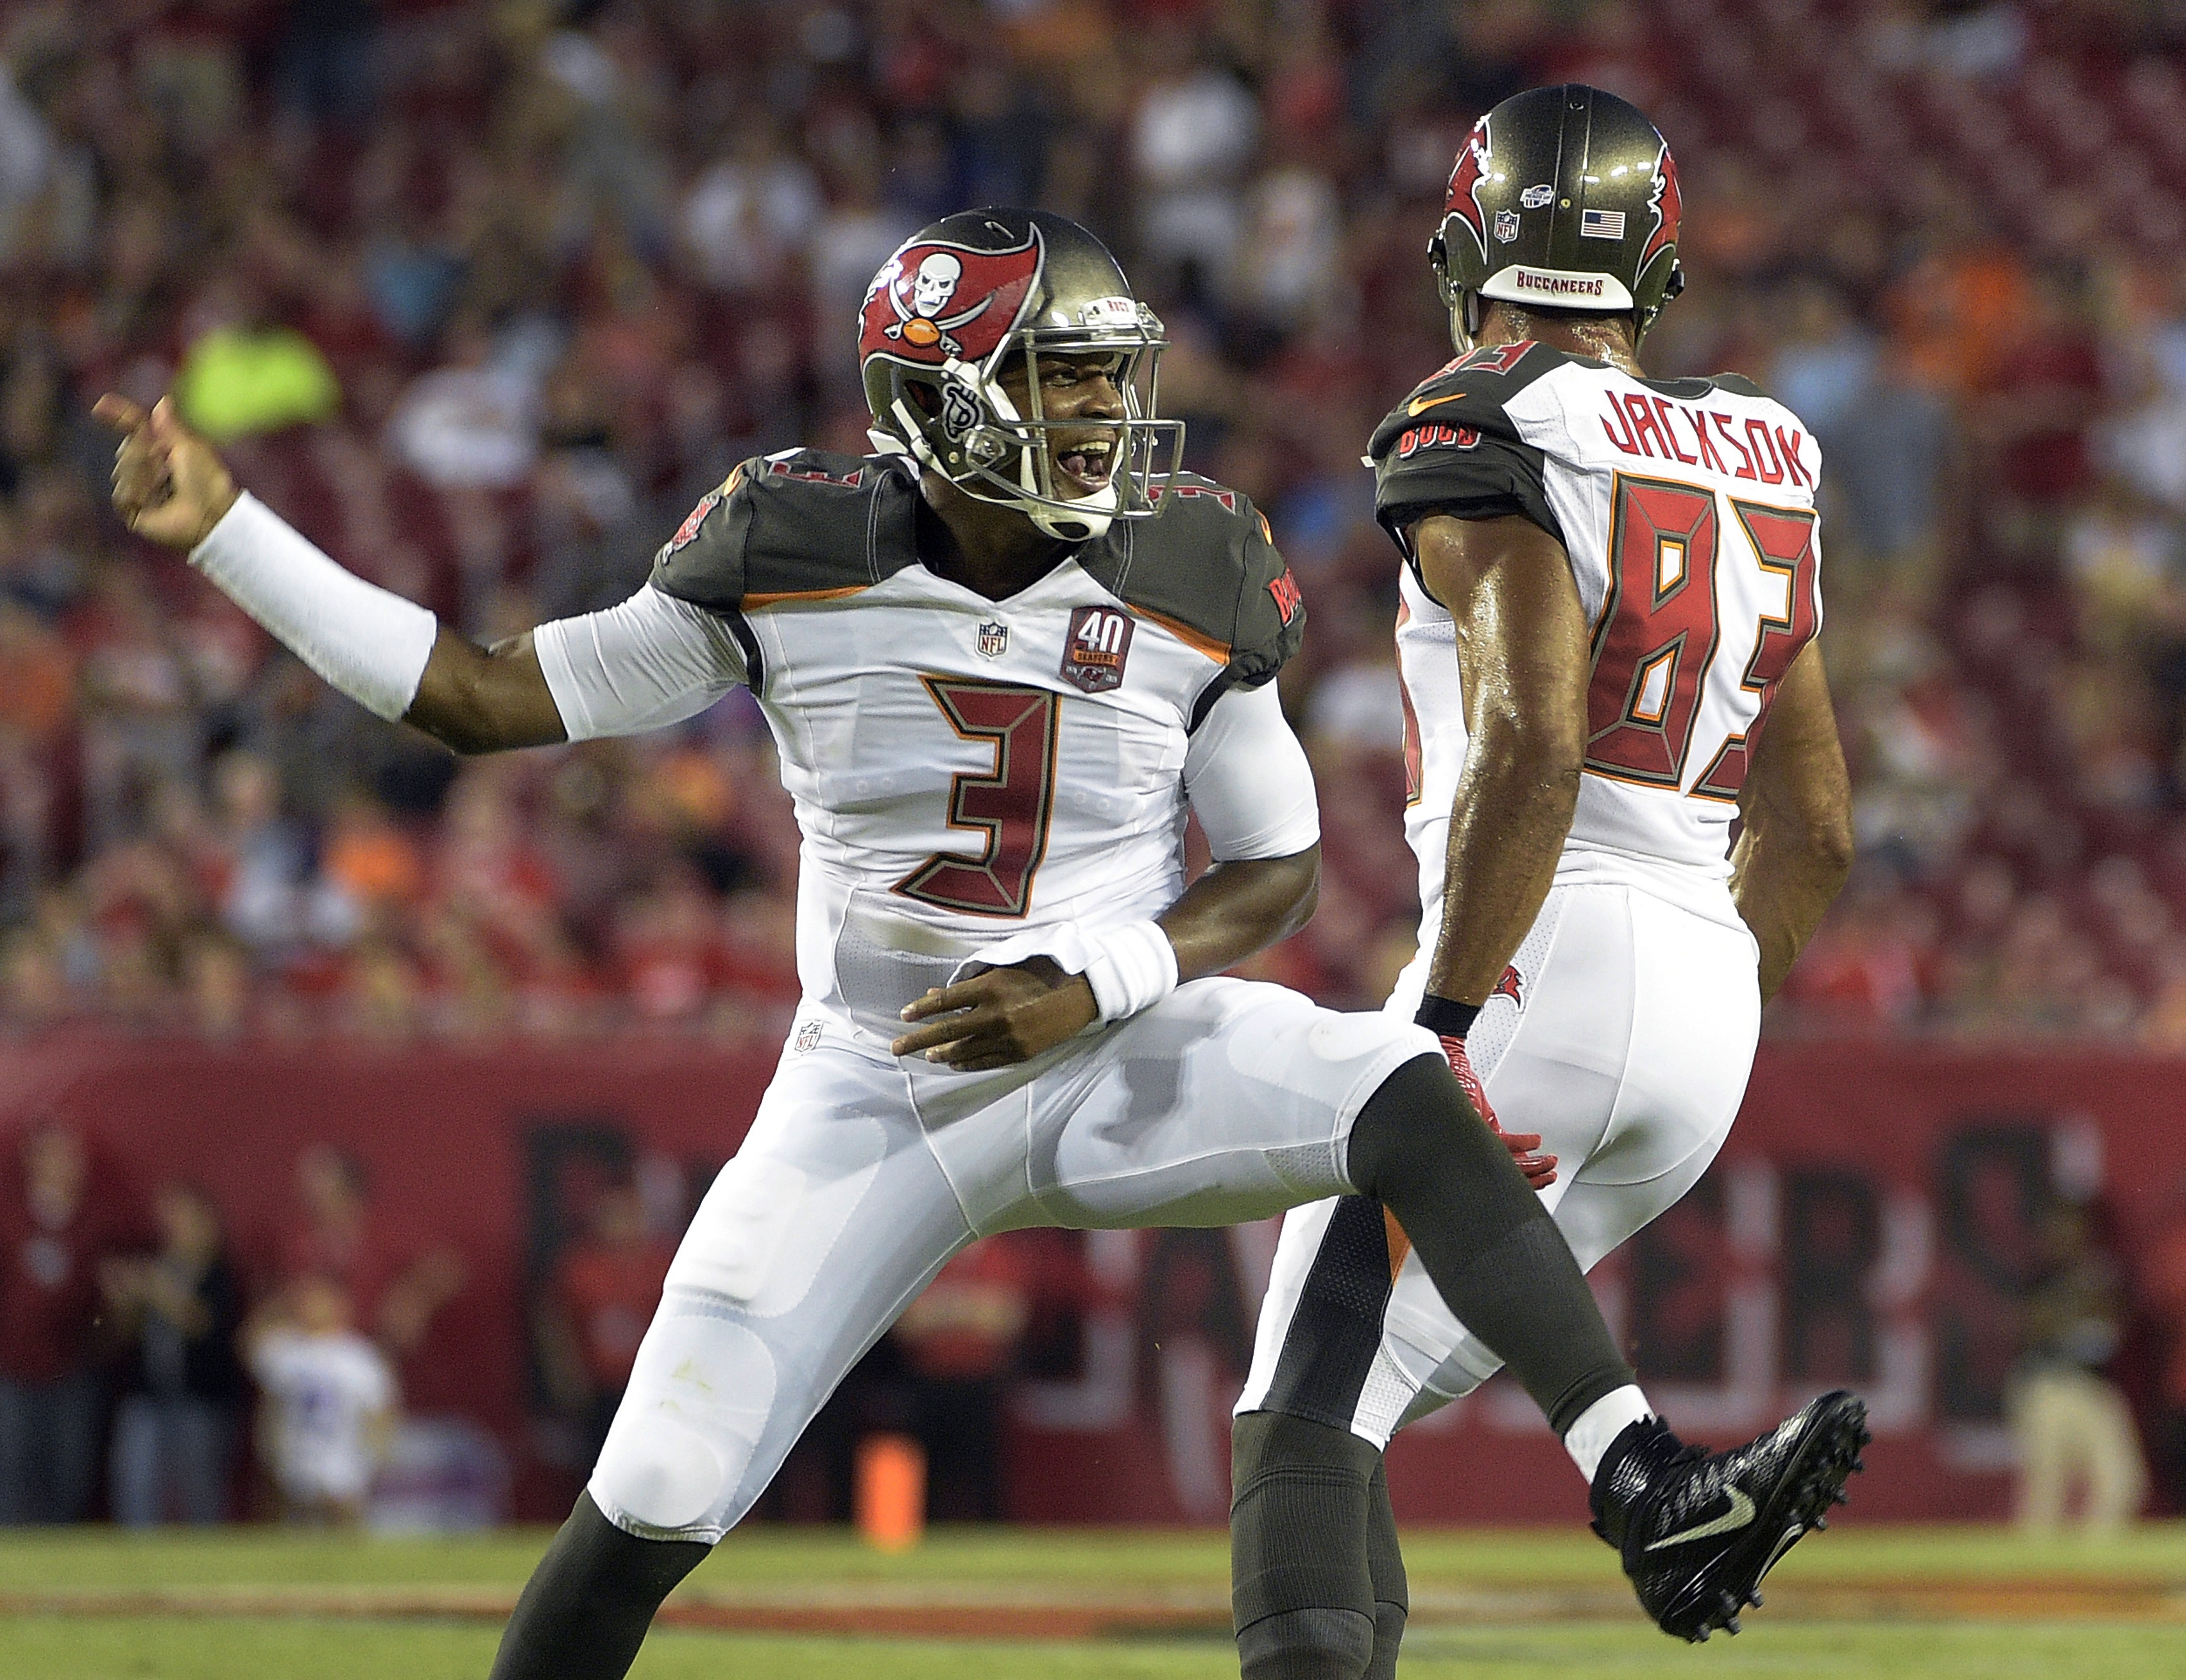 Tampa Bay Buccaneers quarterback Jameis Winston (3) celebrates with wide receiver Vincent Jackson (83) after Winston scored a touchdown against the Cincinnati Bengals during the first quarter of an NFL preseason football game Monday, Aug. 24, 2015, in Tam